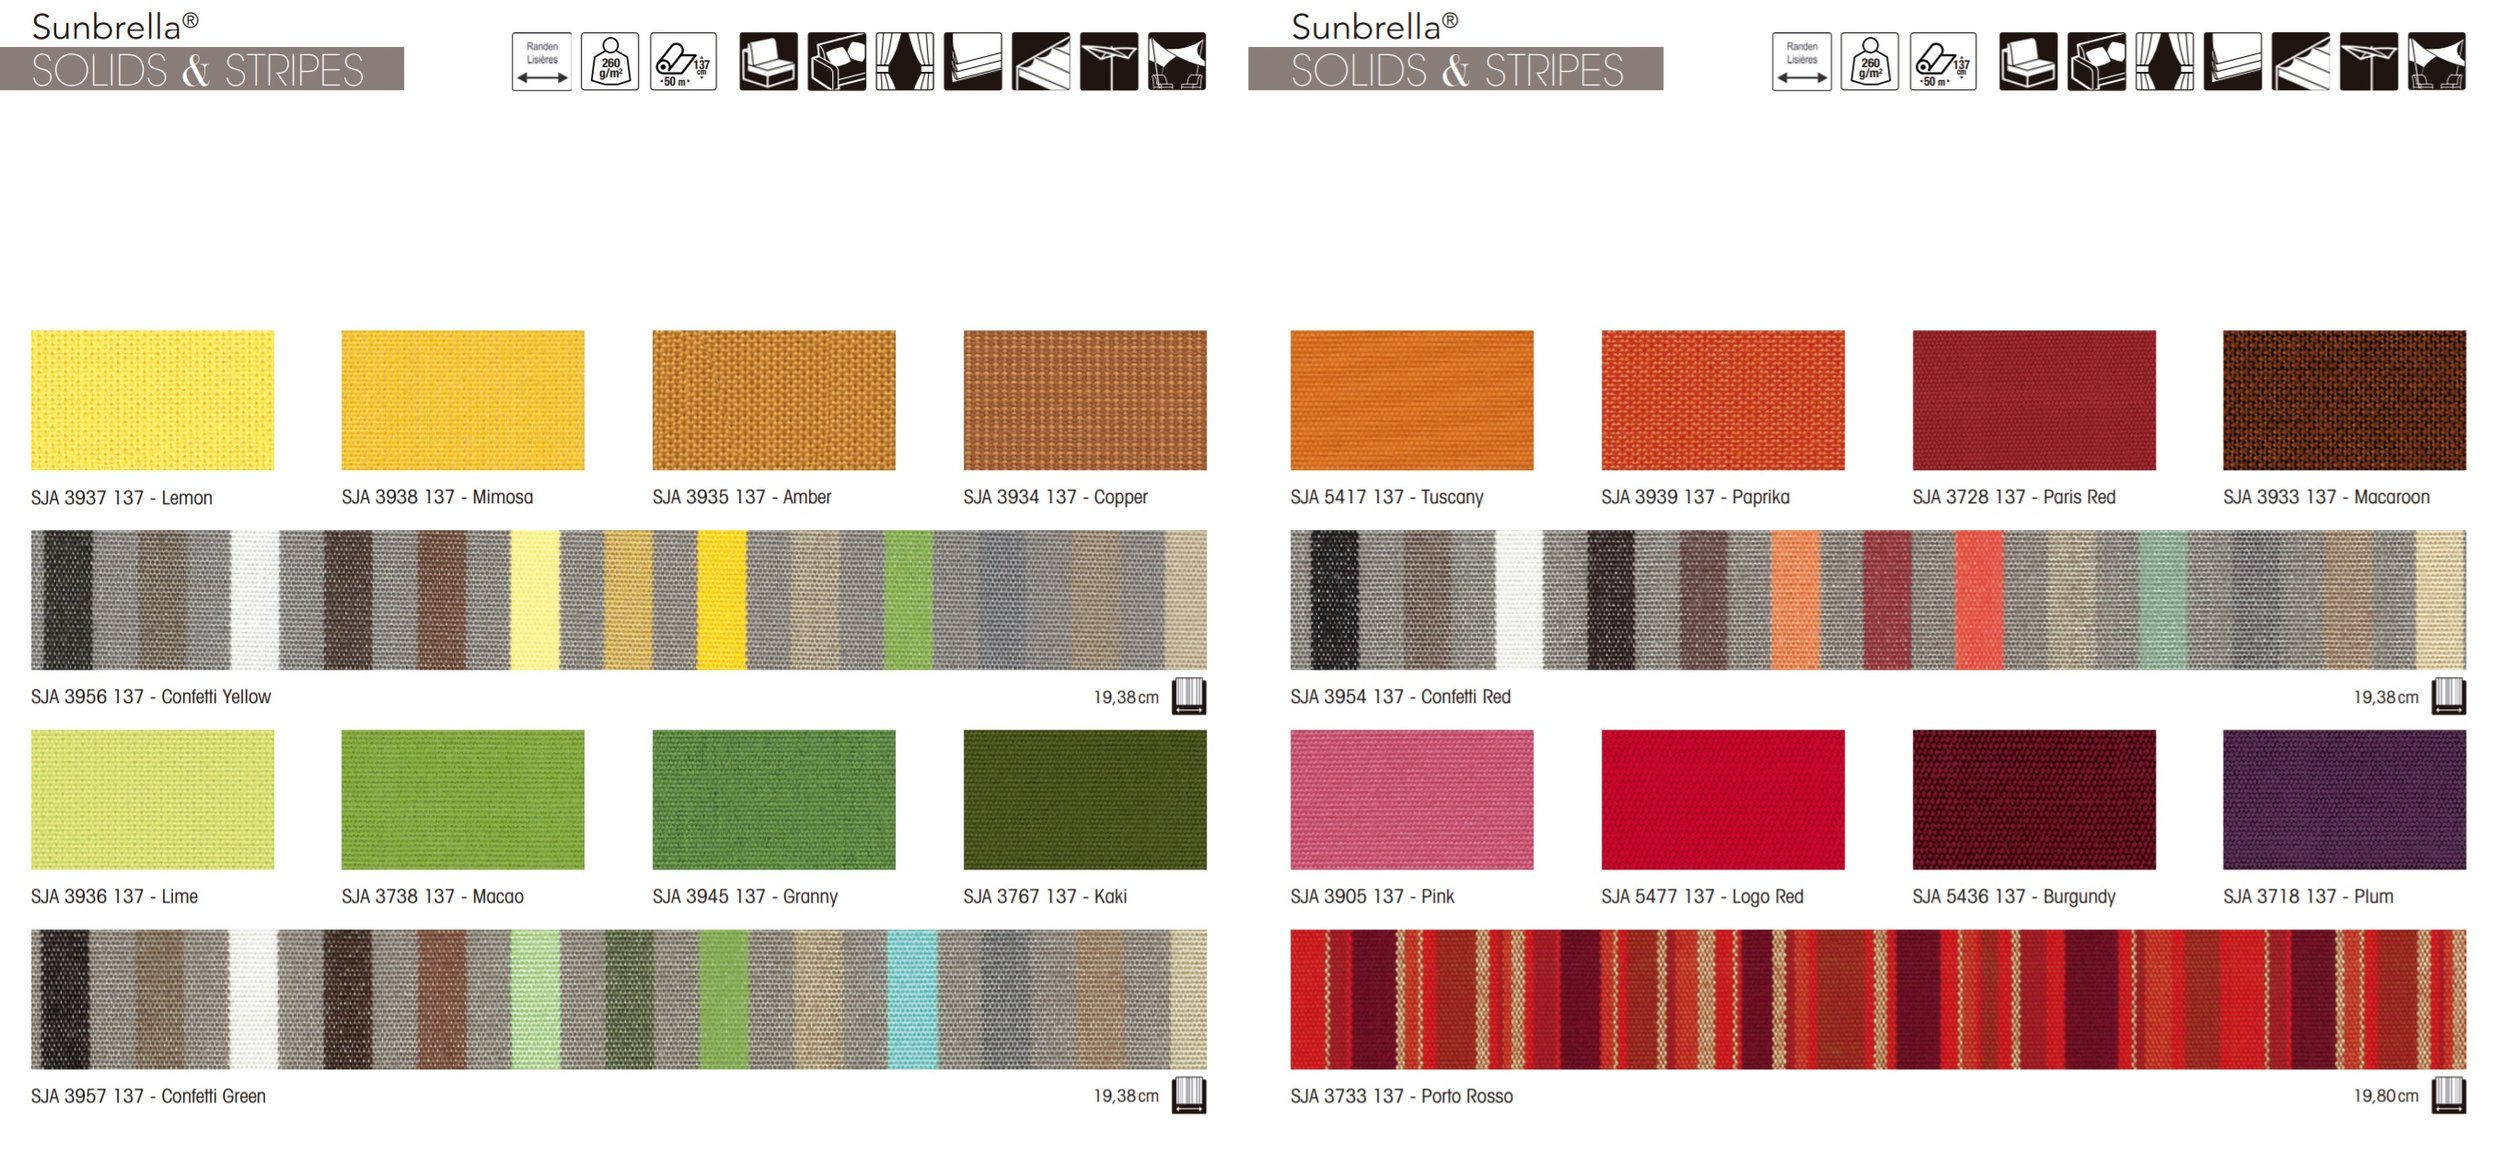 SUNBRELLA FABRIC - SOLIDS AND STRIPES.jpg